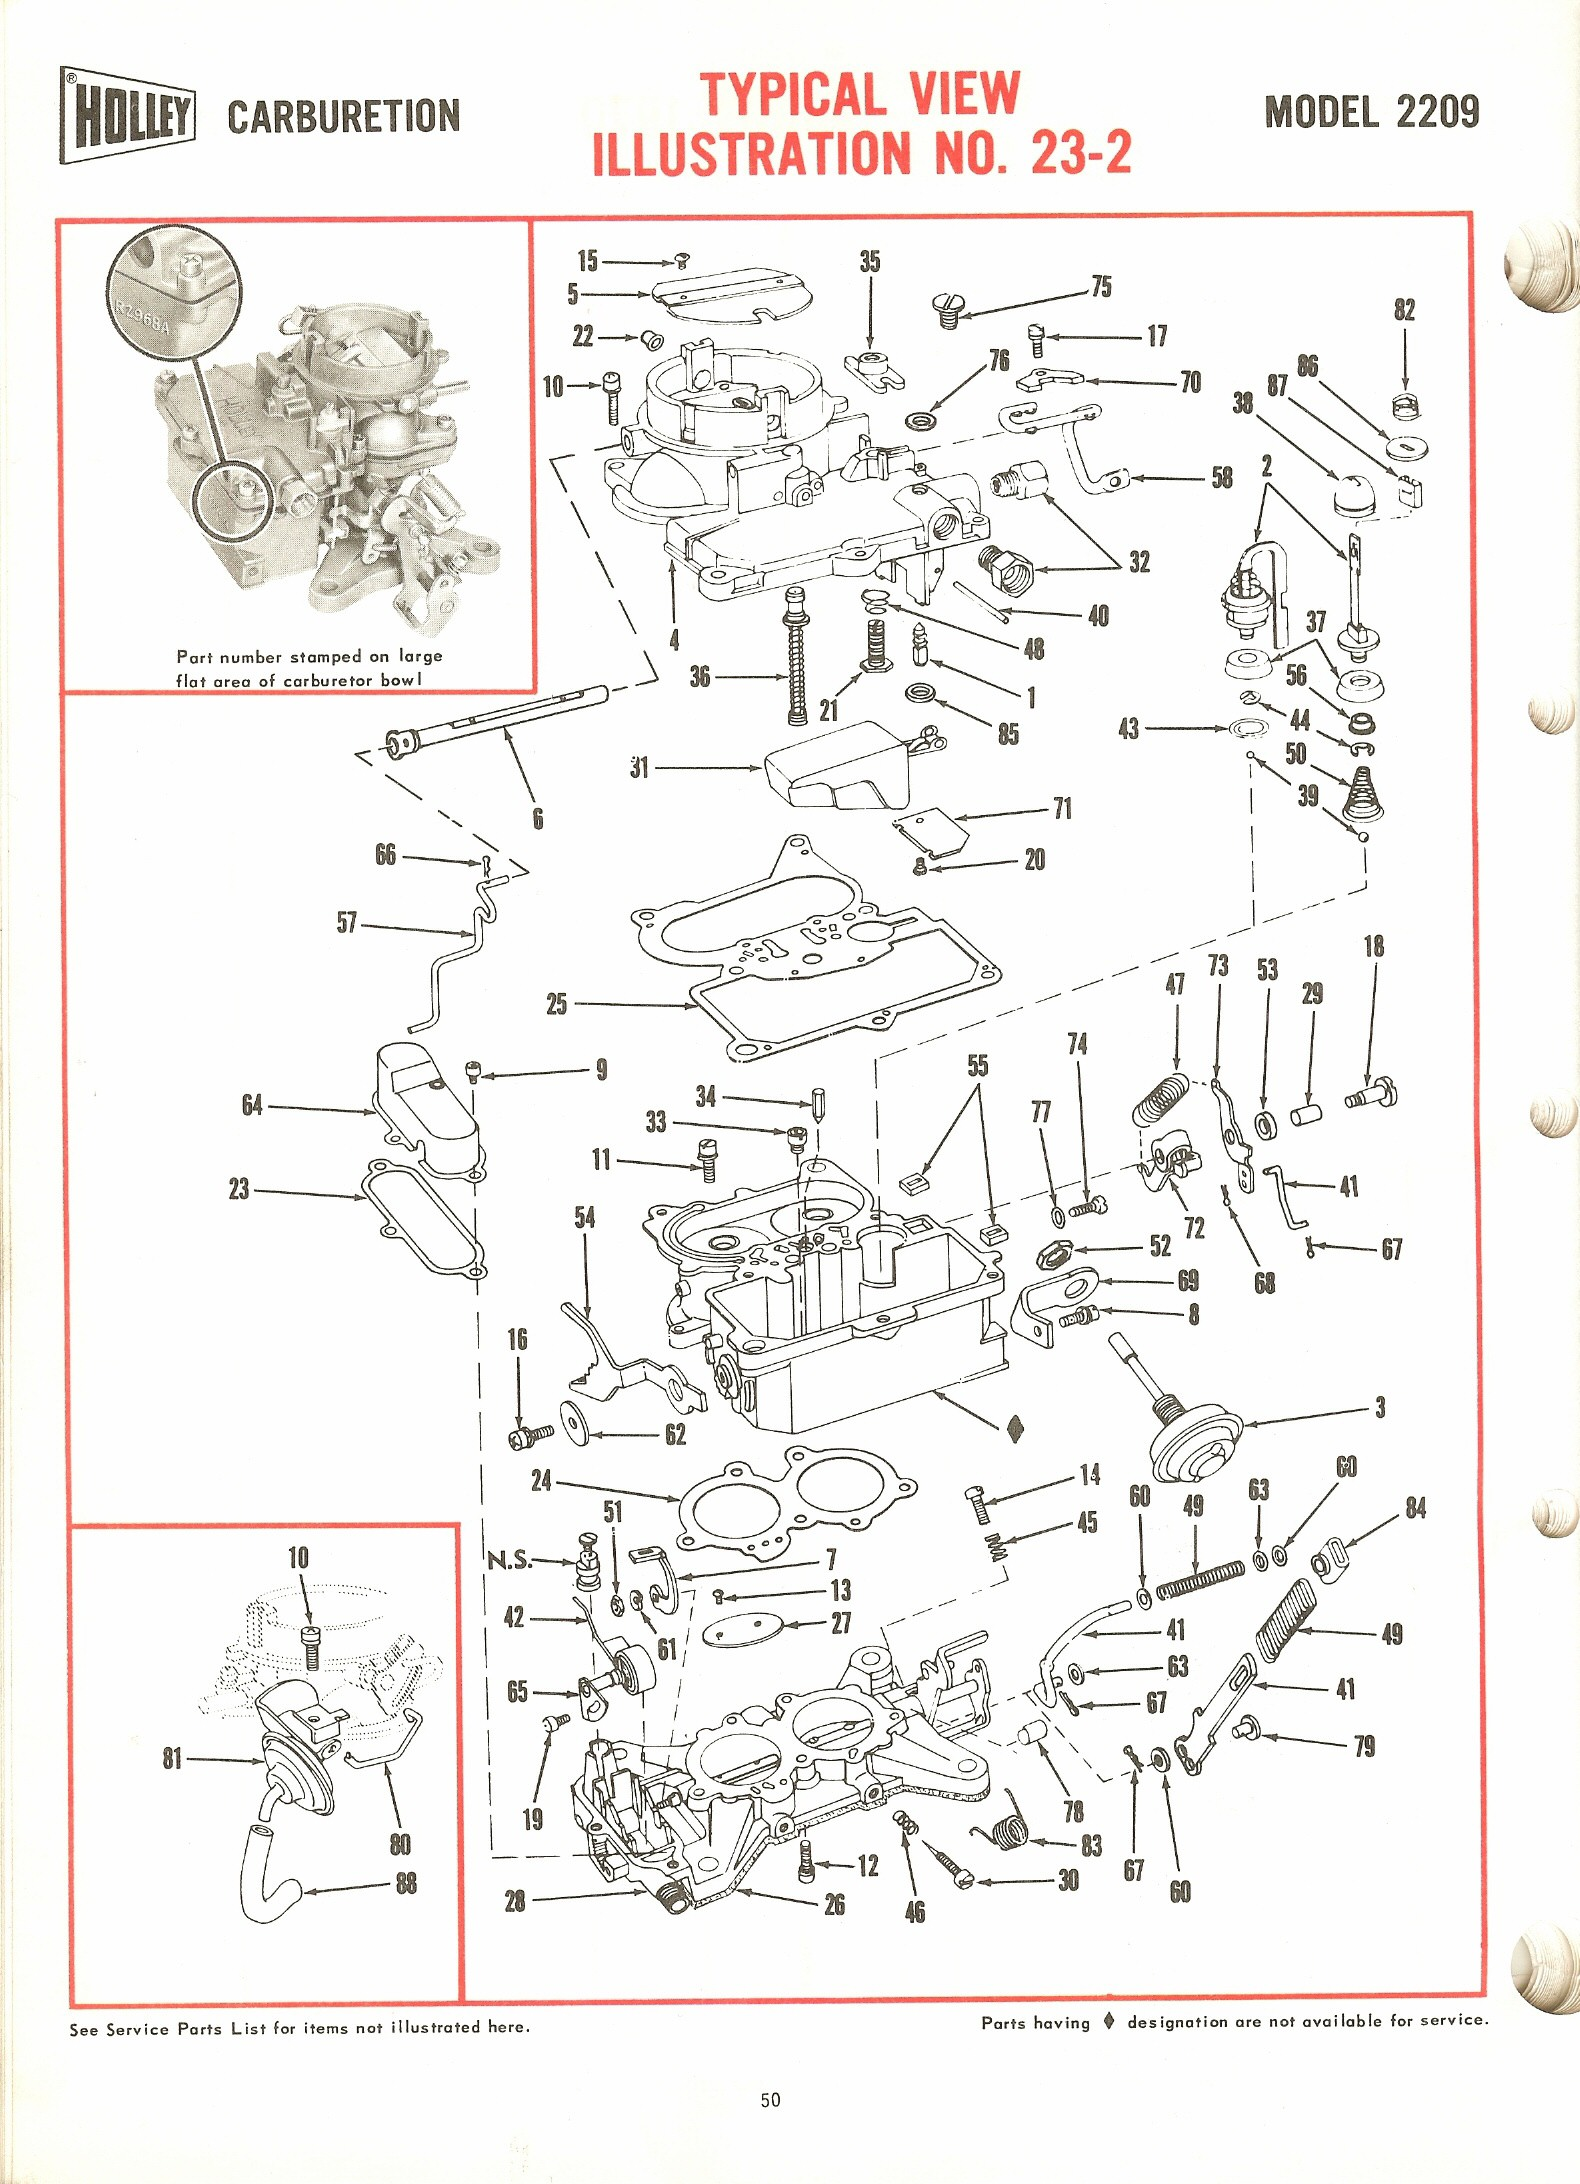 john deere 425 lawn tractor wiring diagram hvac test briggs and stratton 7 hp diagram, briggs, free engine image for user manual download